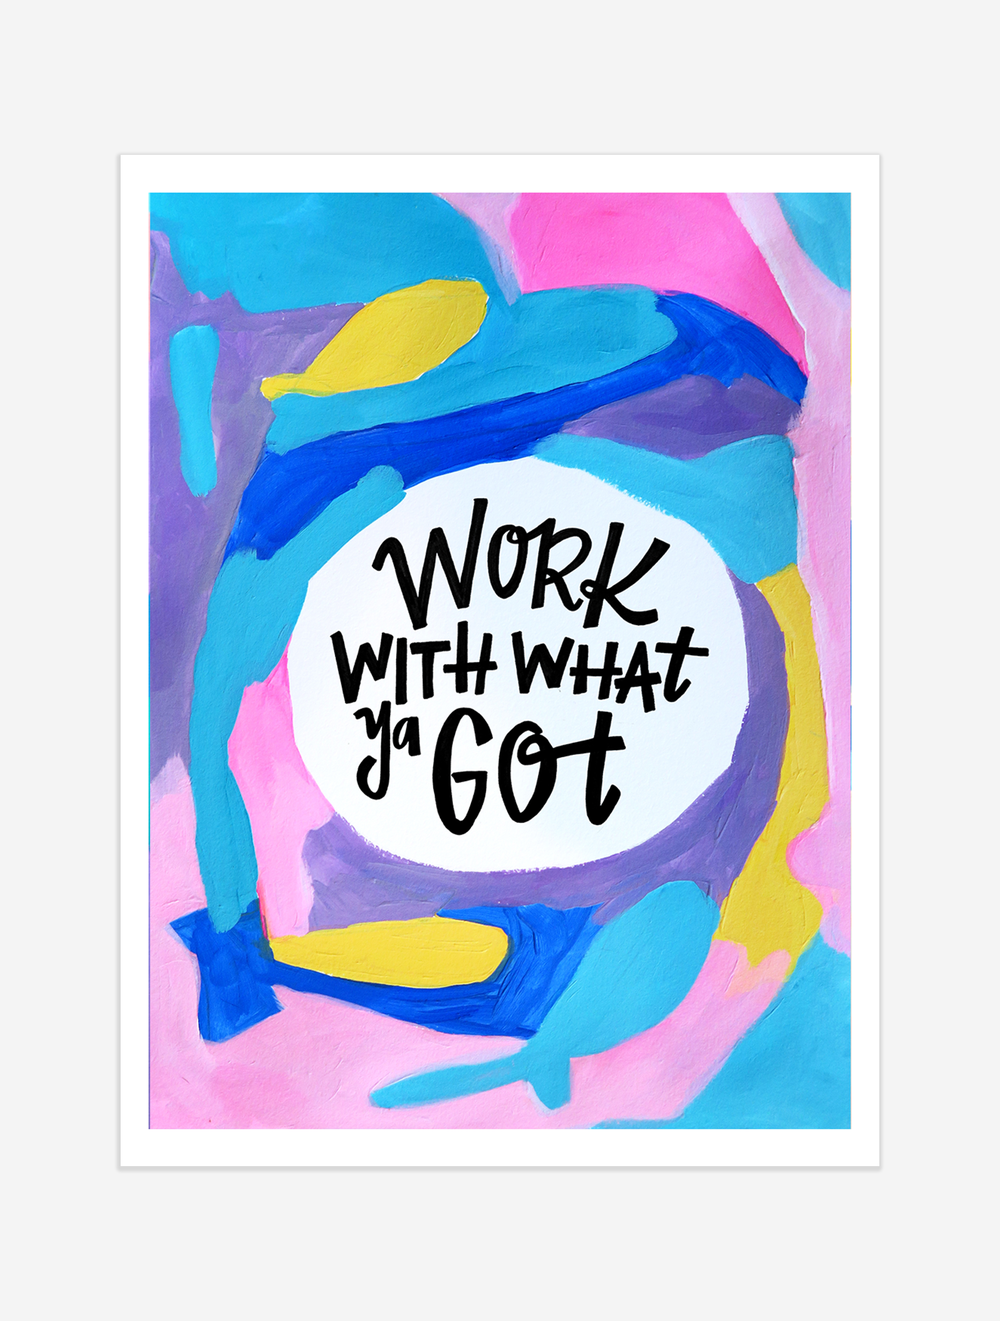 A reminder to consider whether you might actually be able to work with what you got! $25 giclee print available at the Made Vibrant Art Shop.